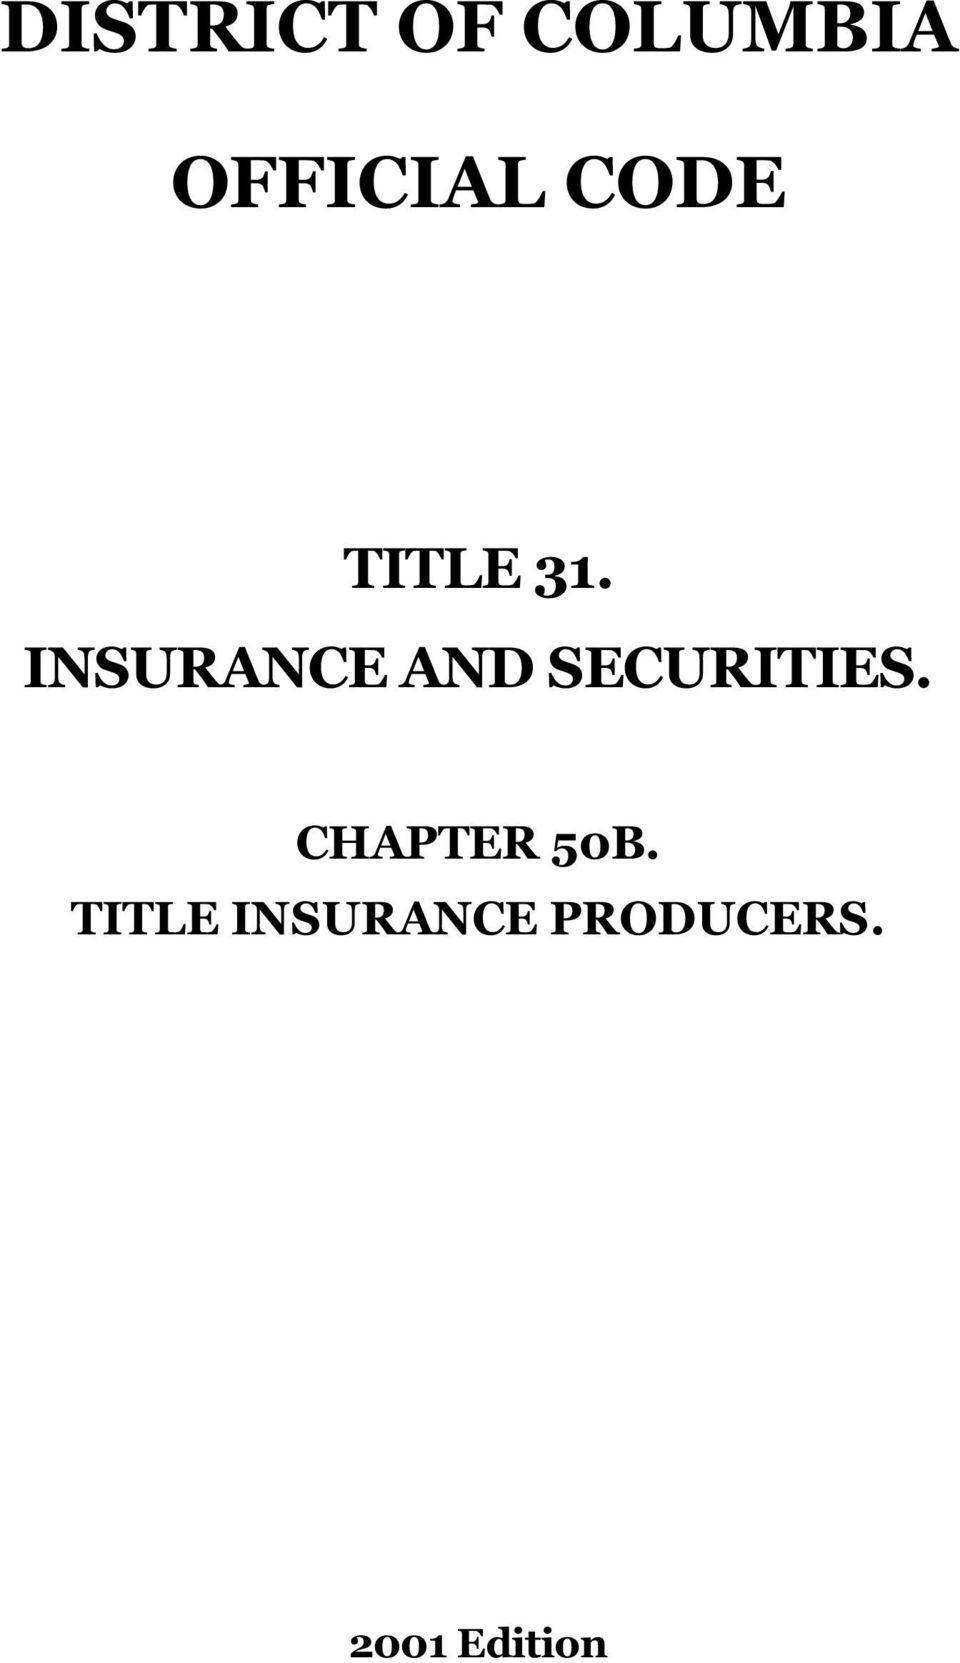 INSURANCE AND SECURITIES.